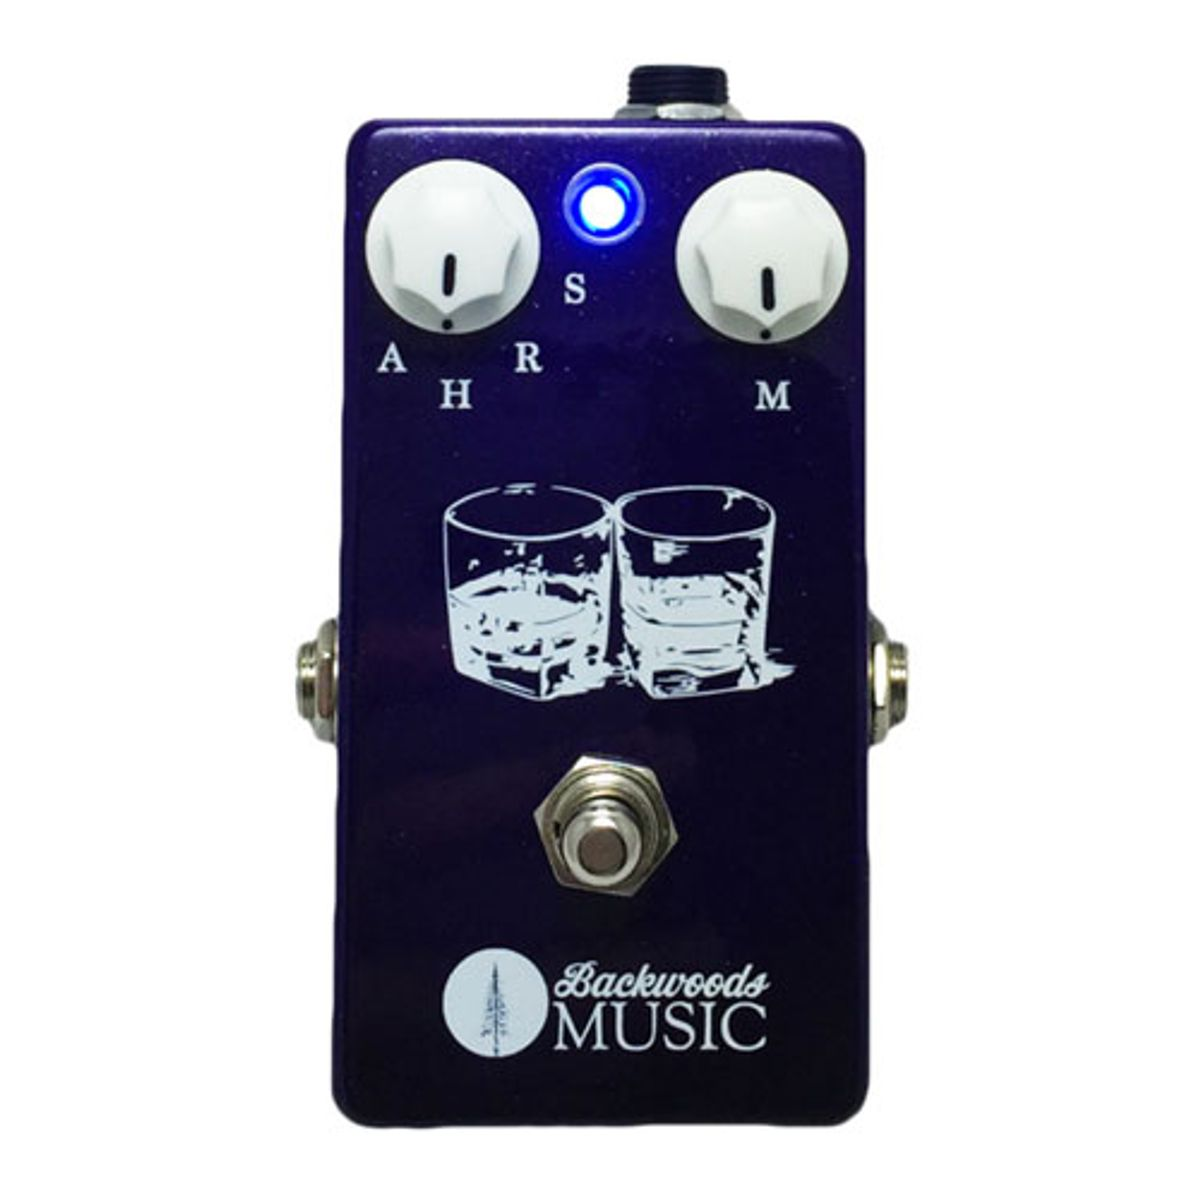 Backwoods Music Introduces the Nightcap Reverb